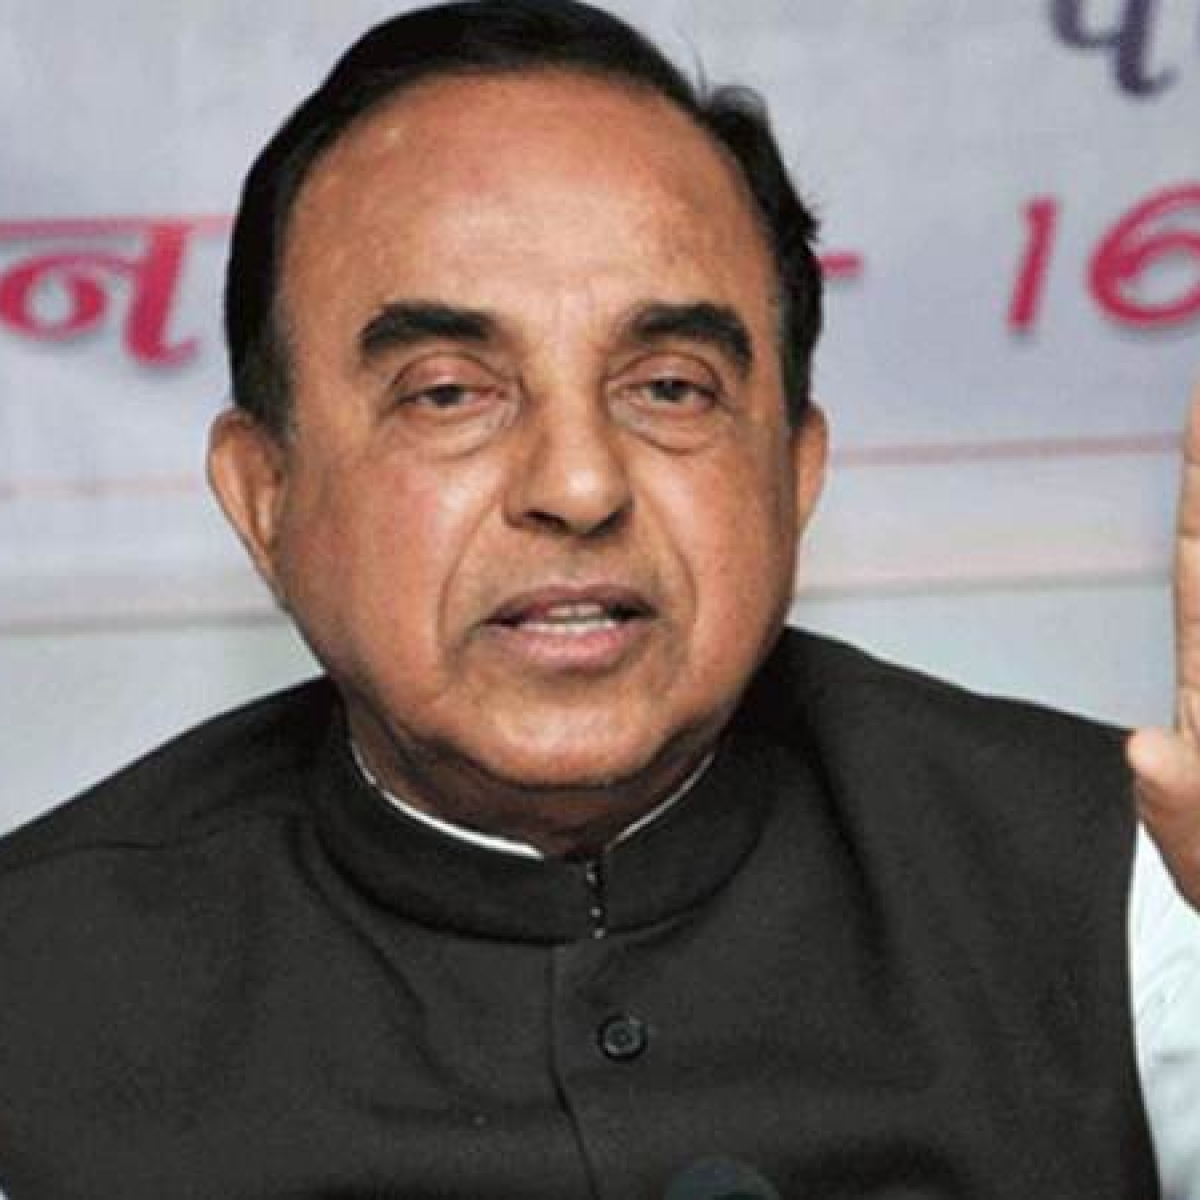 Coronavirus update in India: Subramanian Swamy forced to cancel all travel plans till March 27